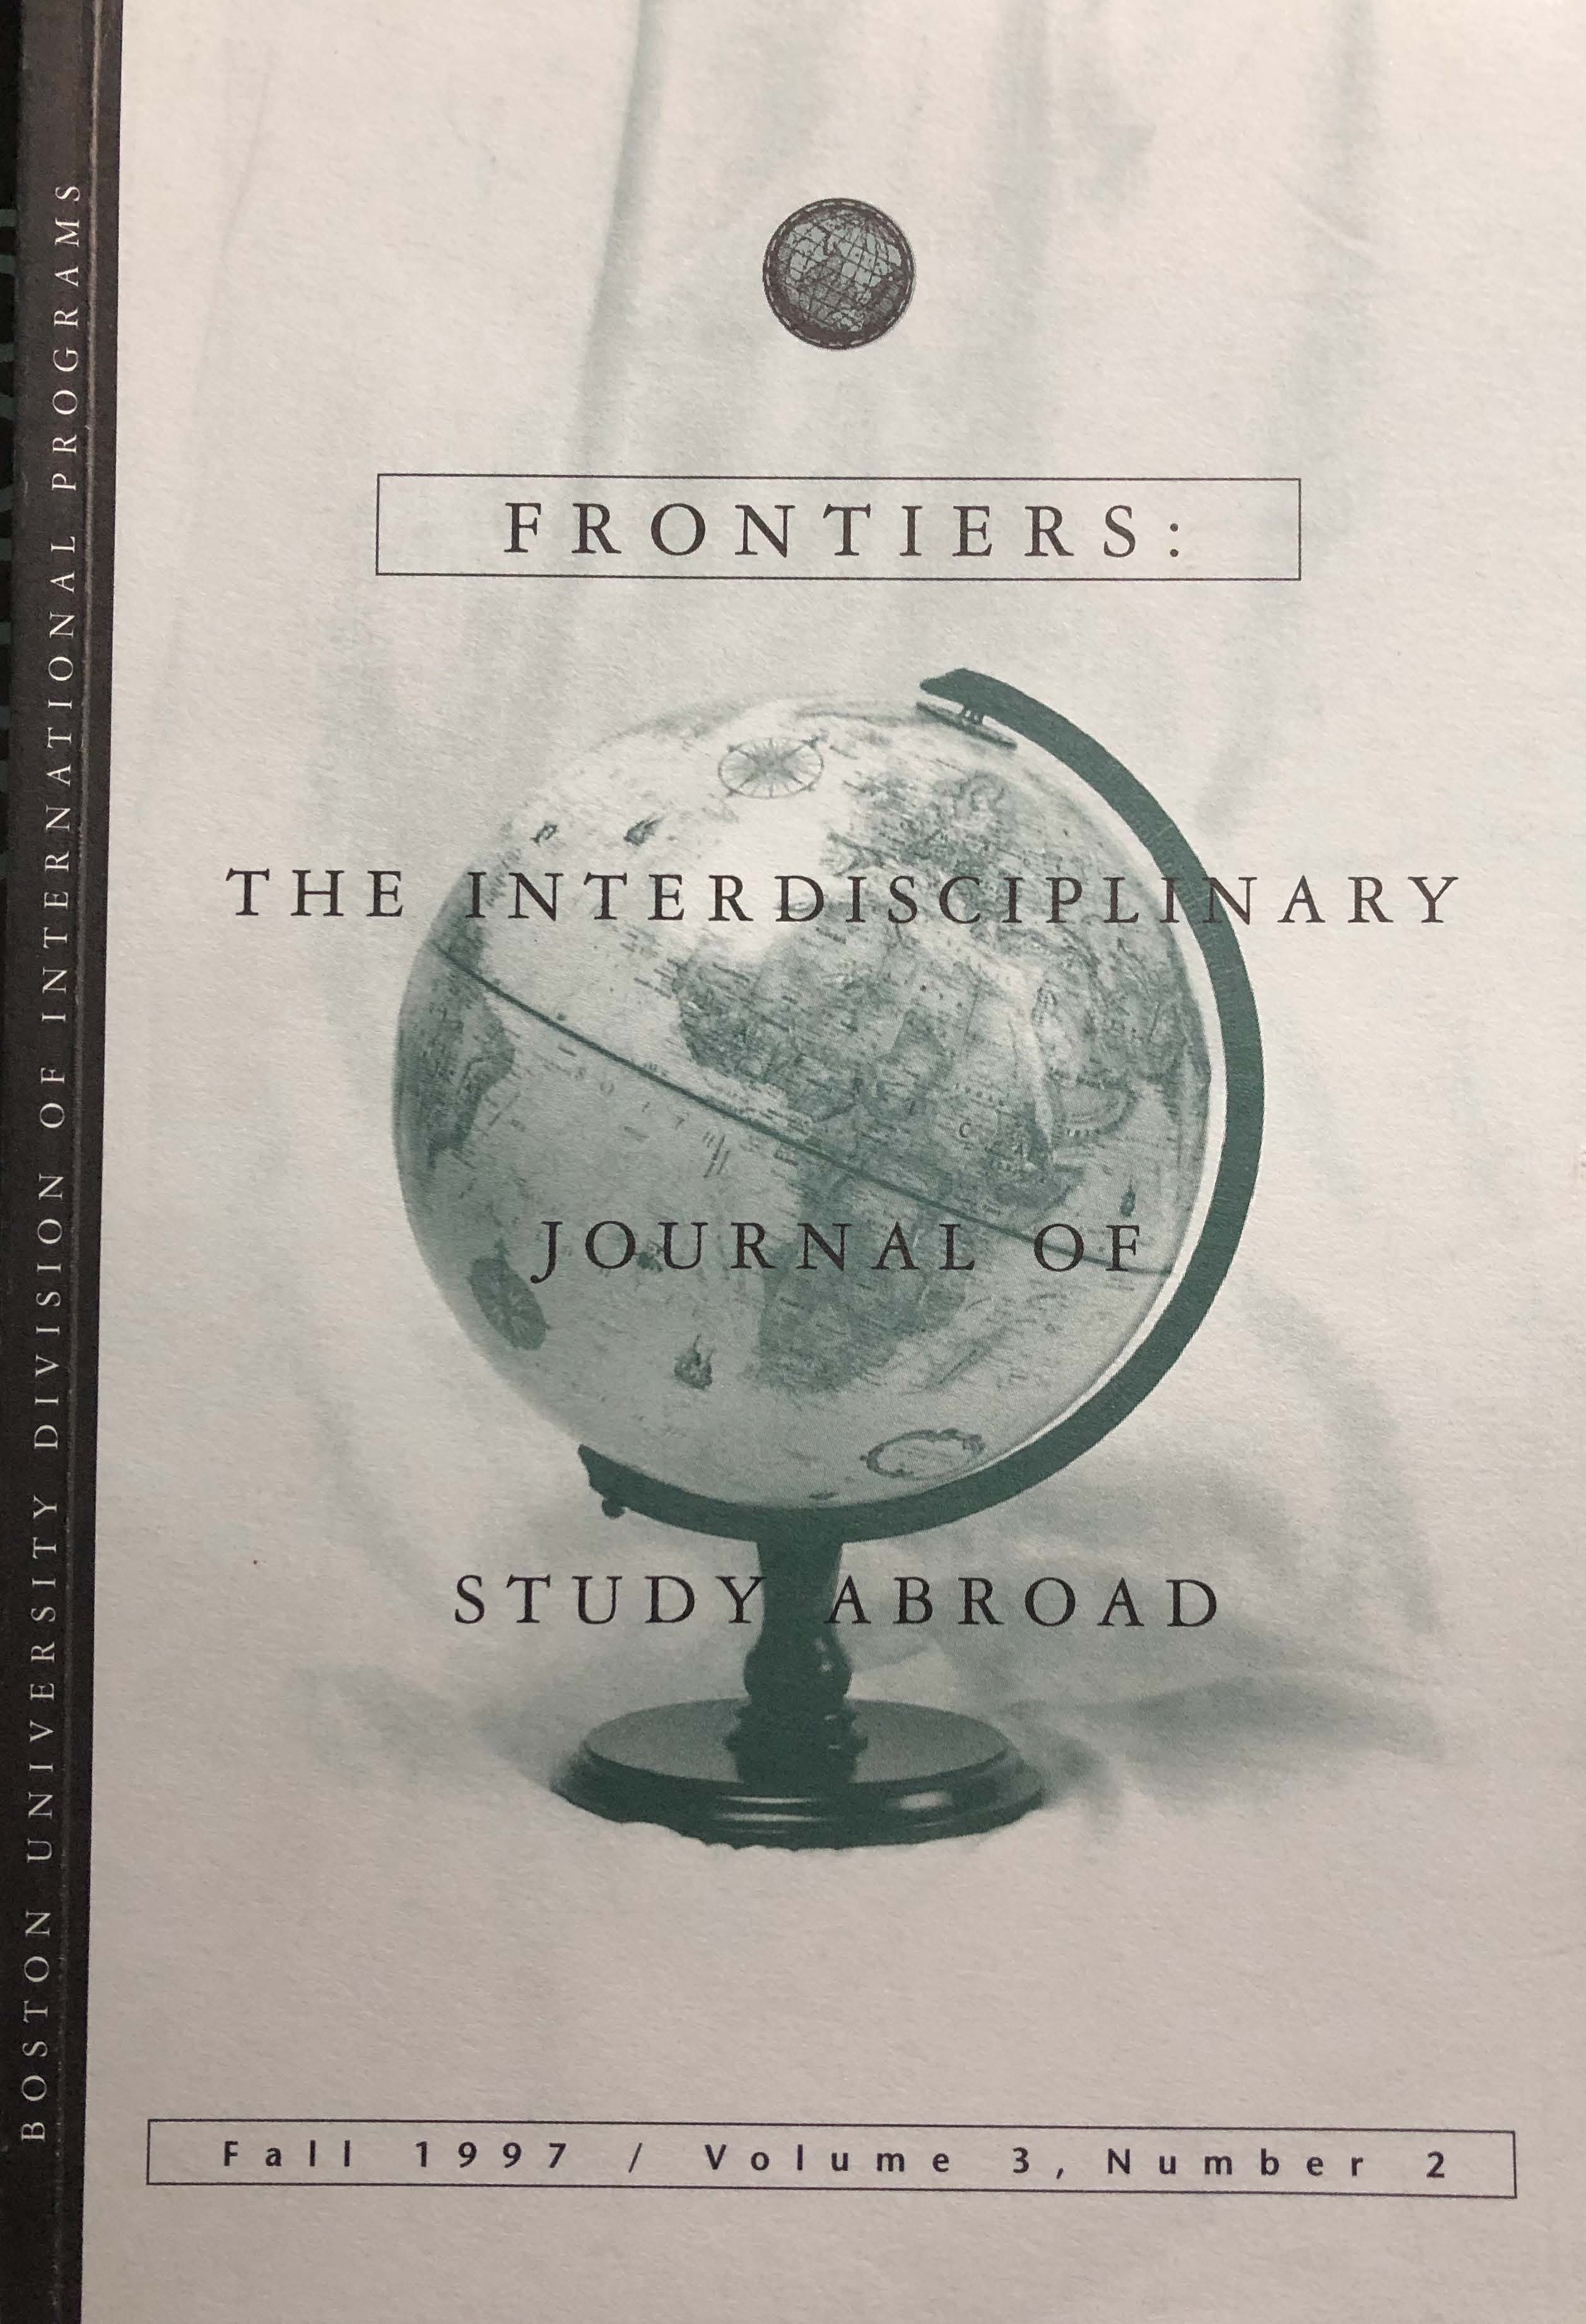 Frontiers: The Interdisciplinary Journal of Study Abroad